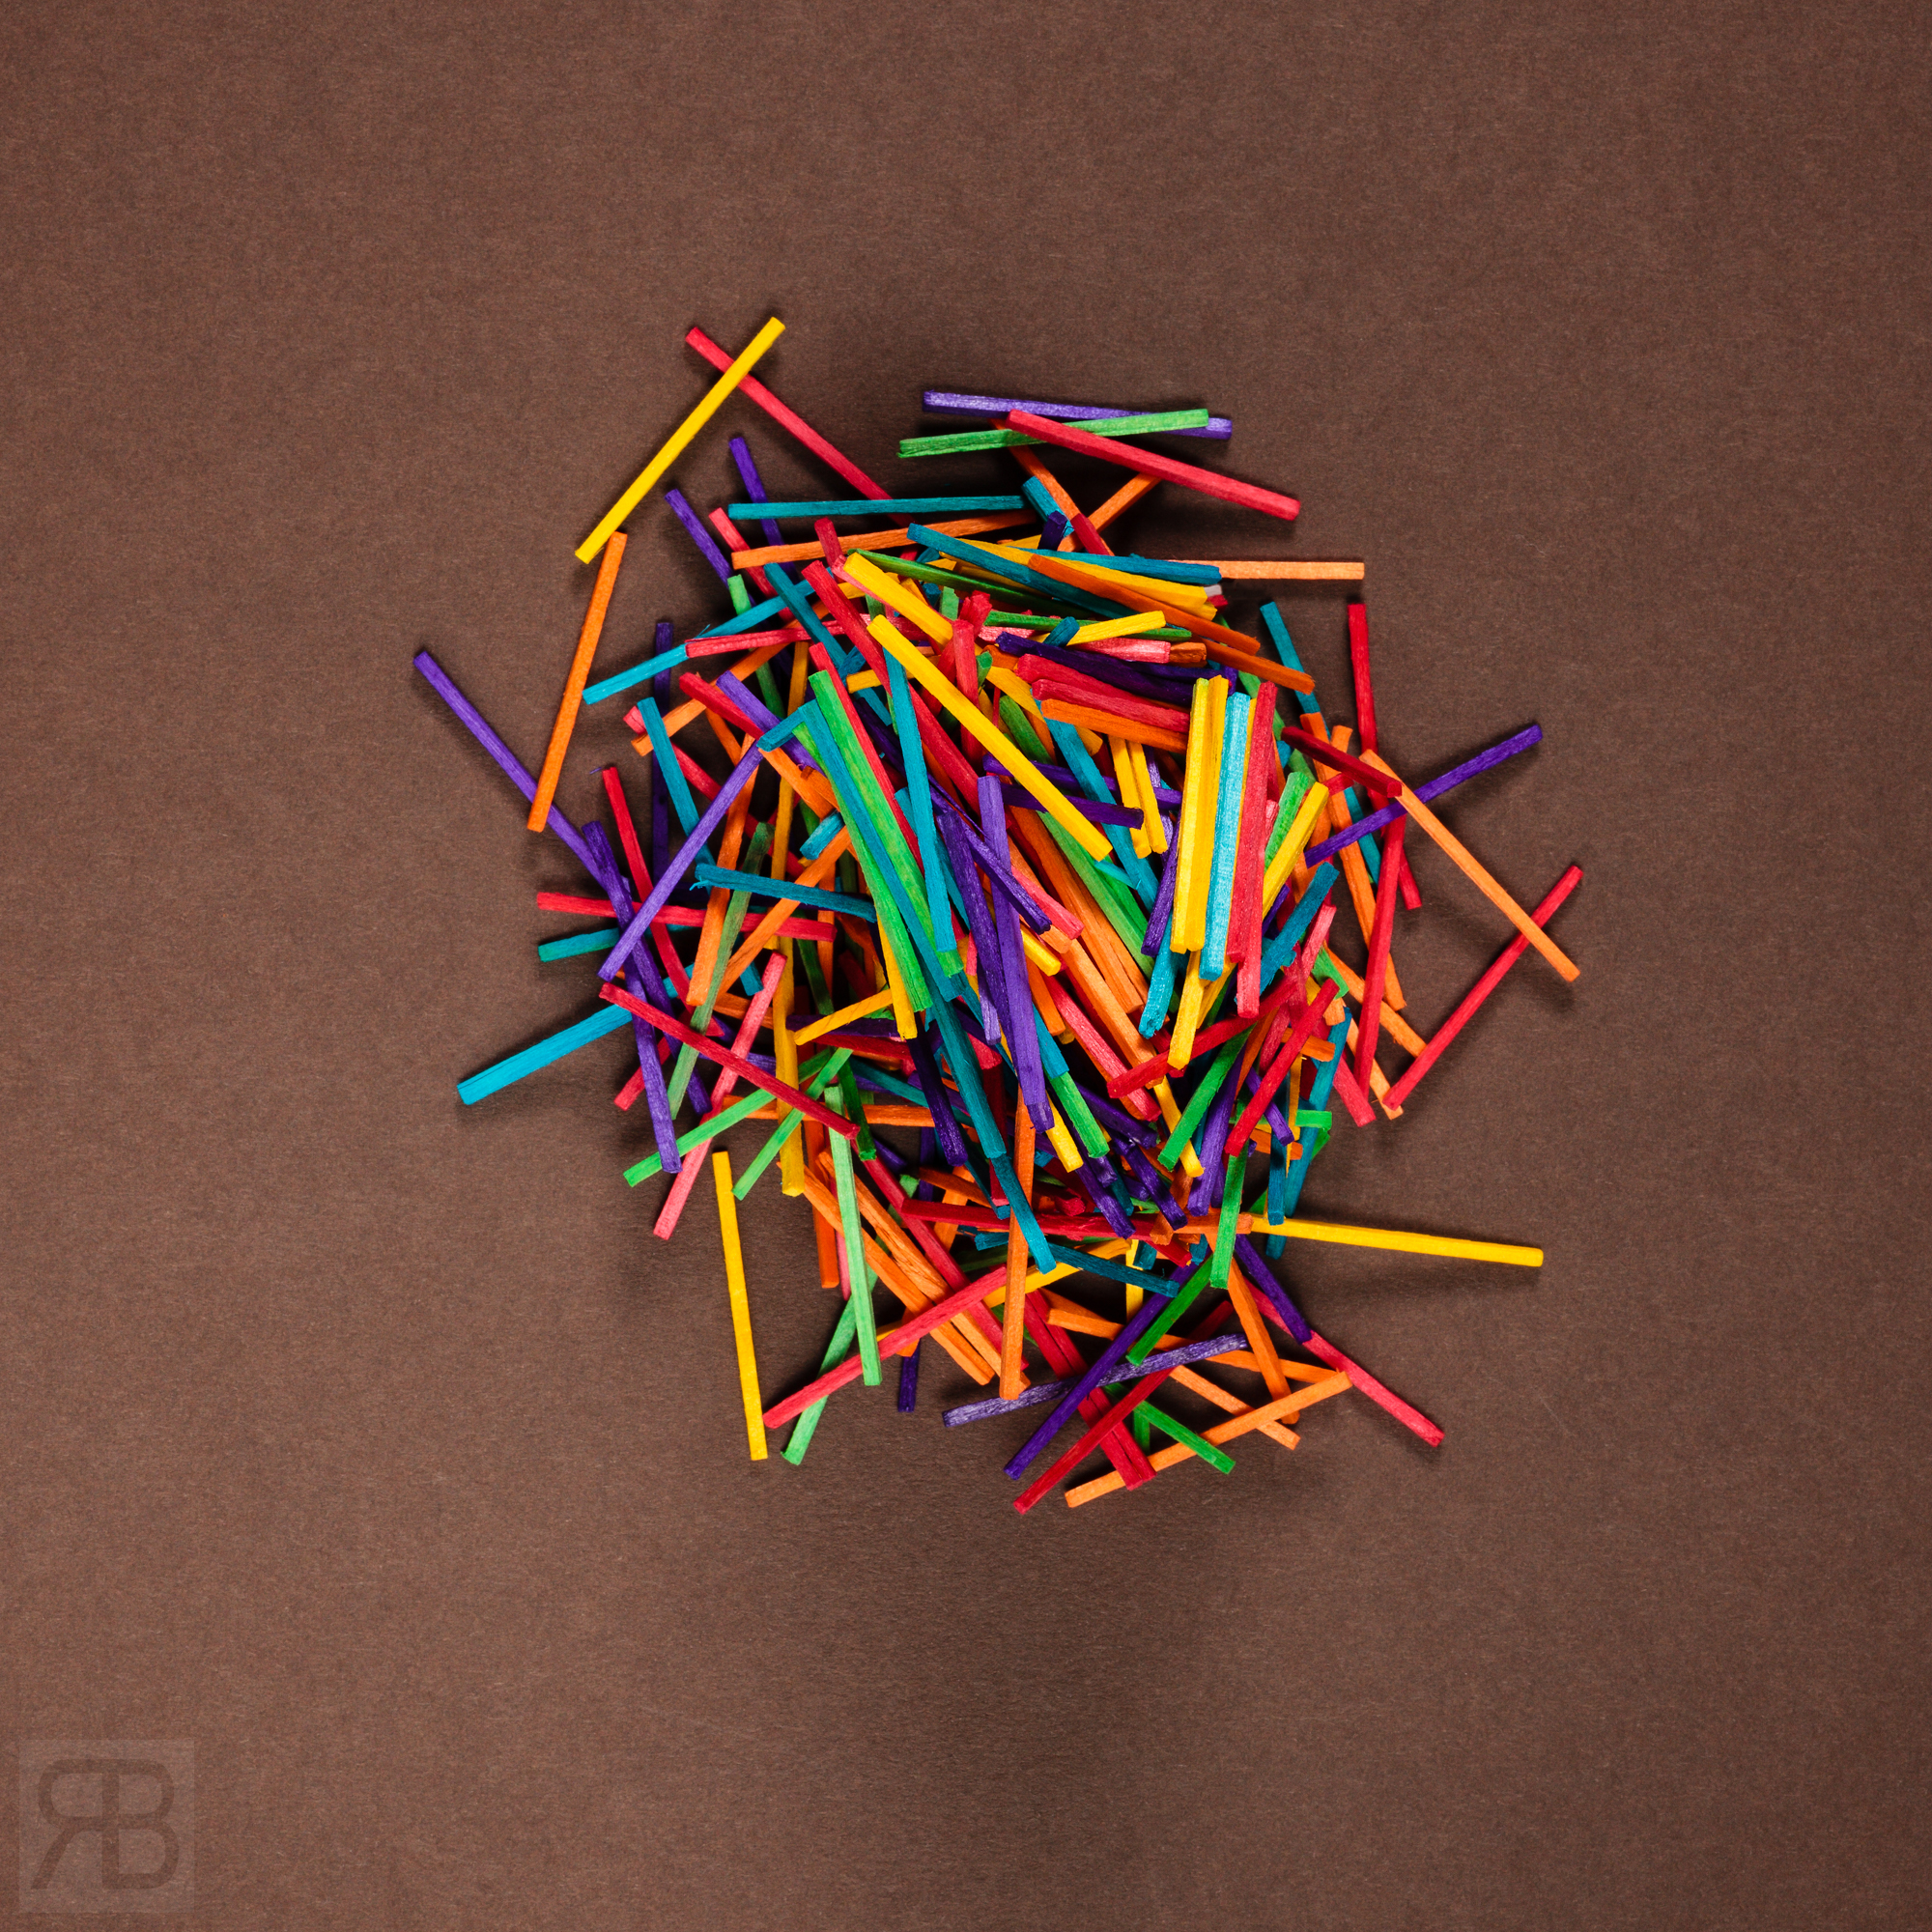 Coloured Matchsticks - Still Life